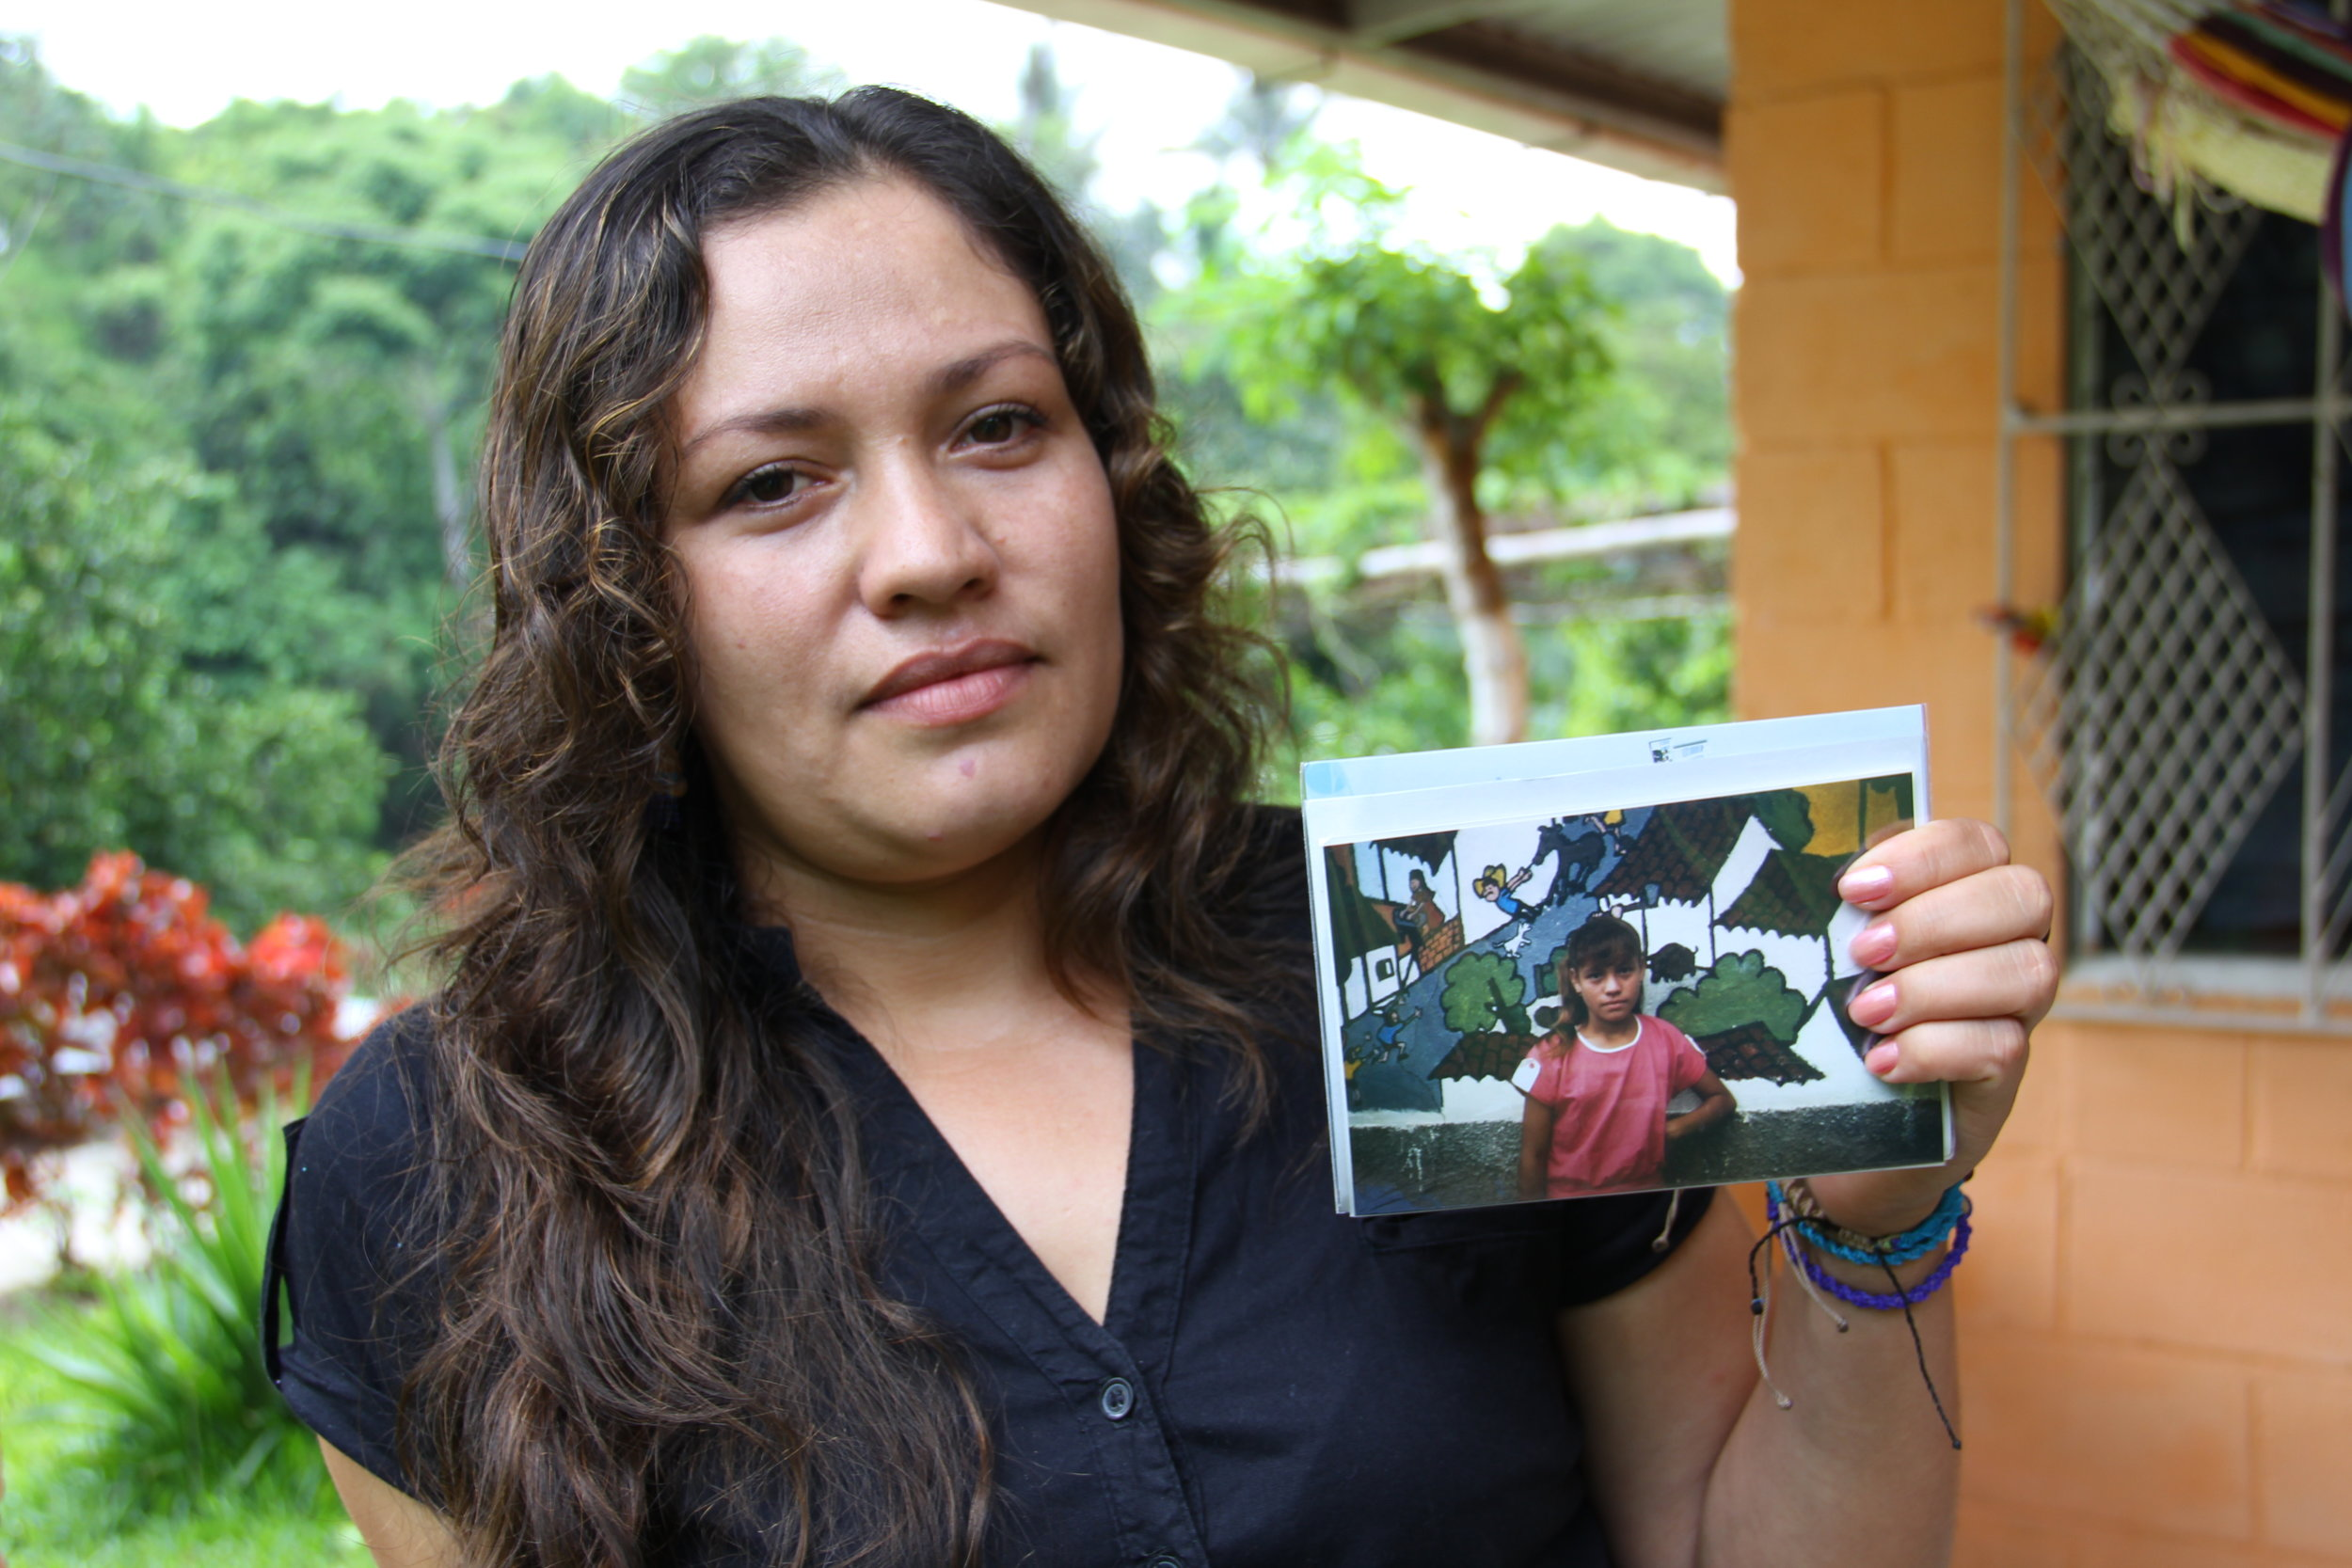 Yesenia remembers hiding from soldiers during the war. Now she is raising her son in El Salvador on her own while her husband works in the U.S. Photo by Pat Goudvis.